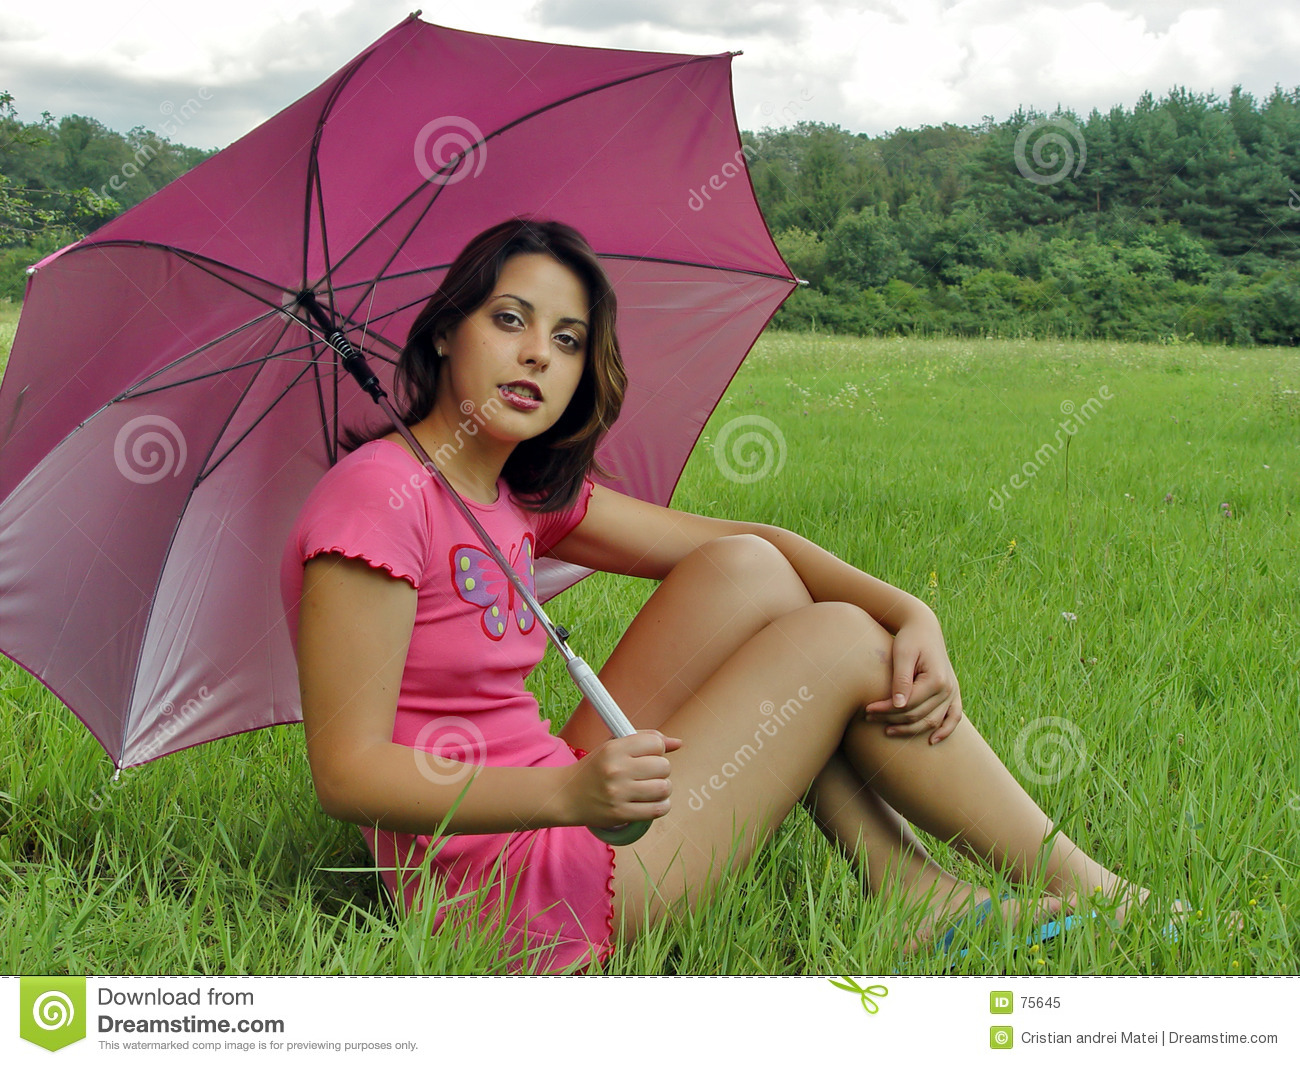 Umbrella girl stock image. Image of colorful, butterfly ...